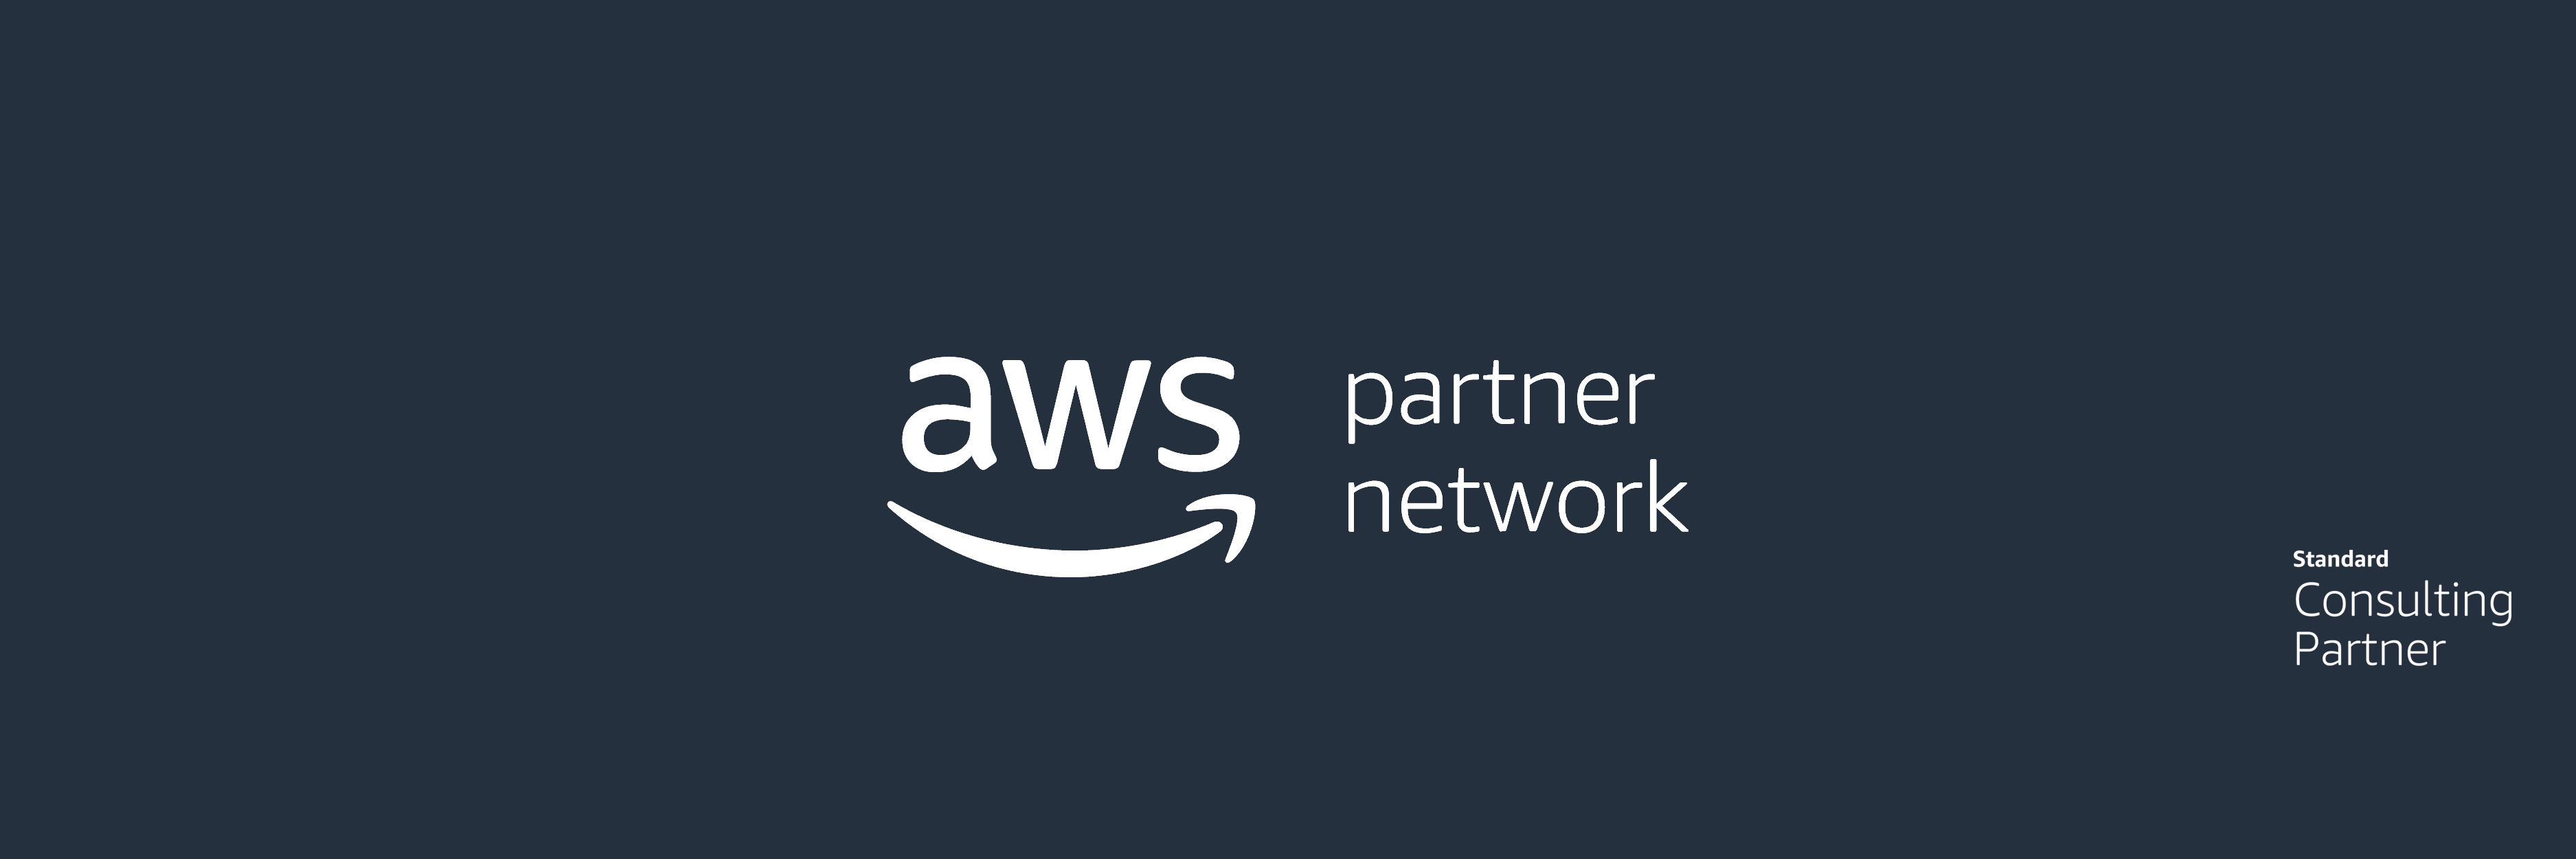 AND Digital Joins Amazon Web Services Partner Network